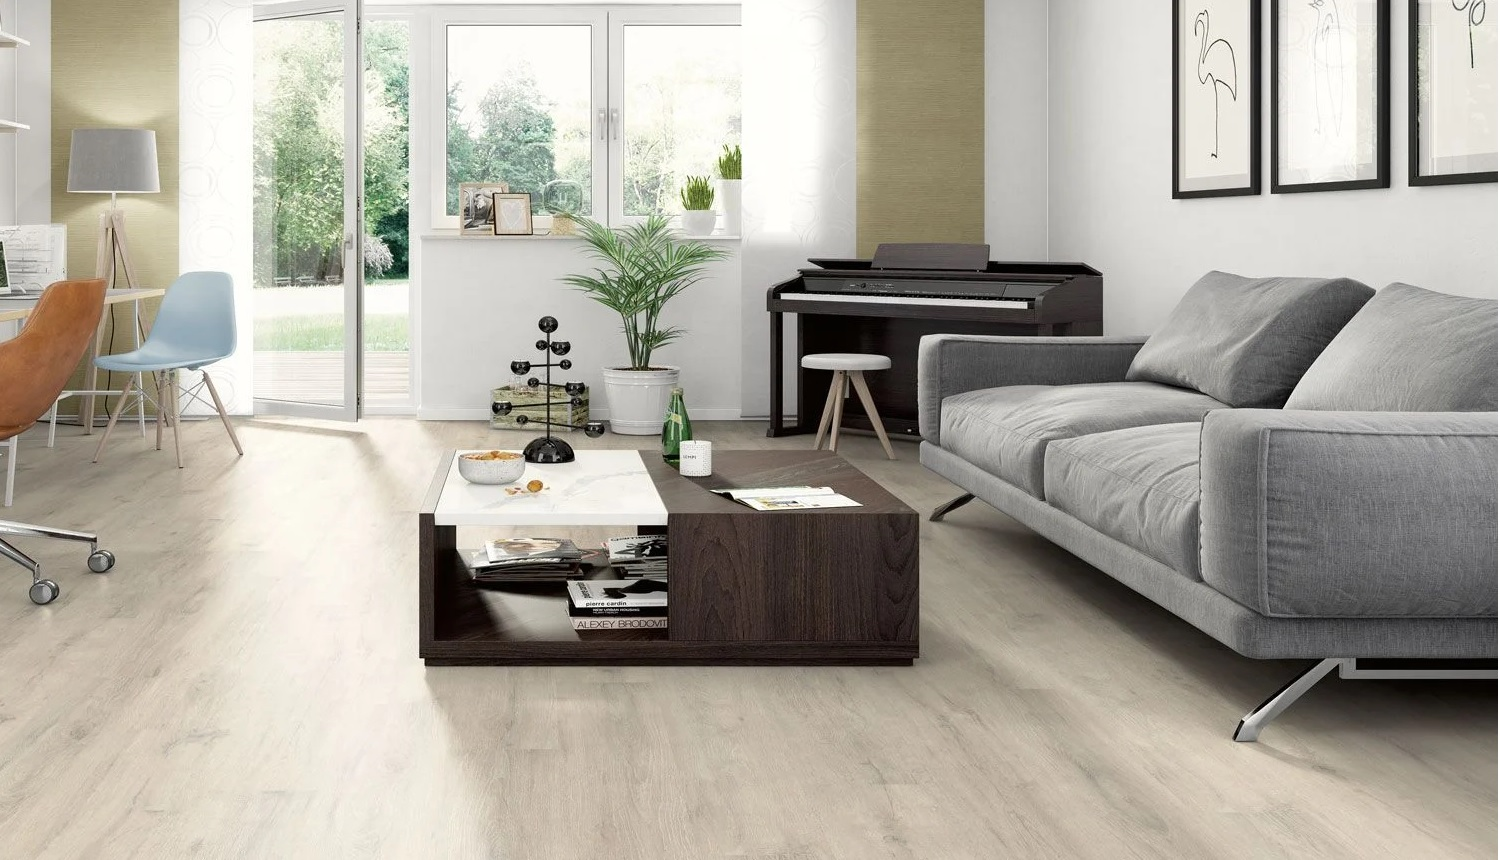 Best Area Rugs For Light Laminate Floor, What Kind Of Rug Can I Use On Laminate Flooring